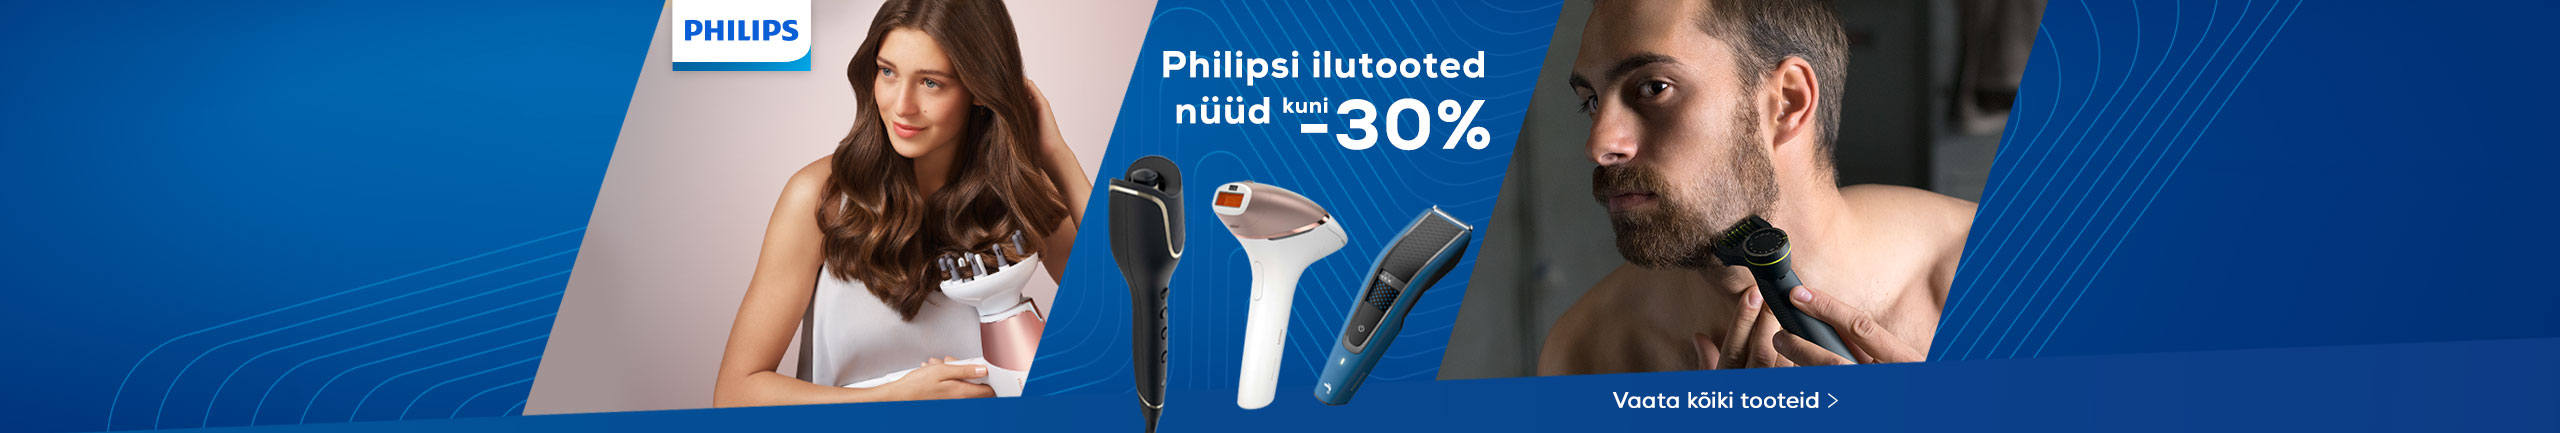 Philips beauty products now up to - 30%